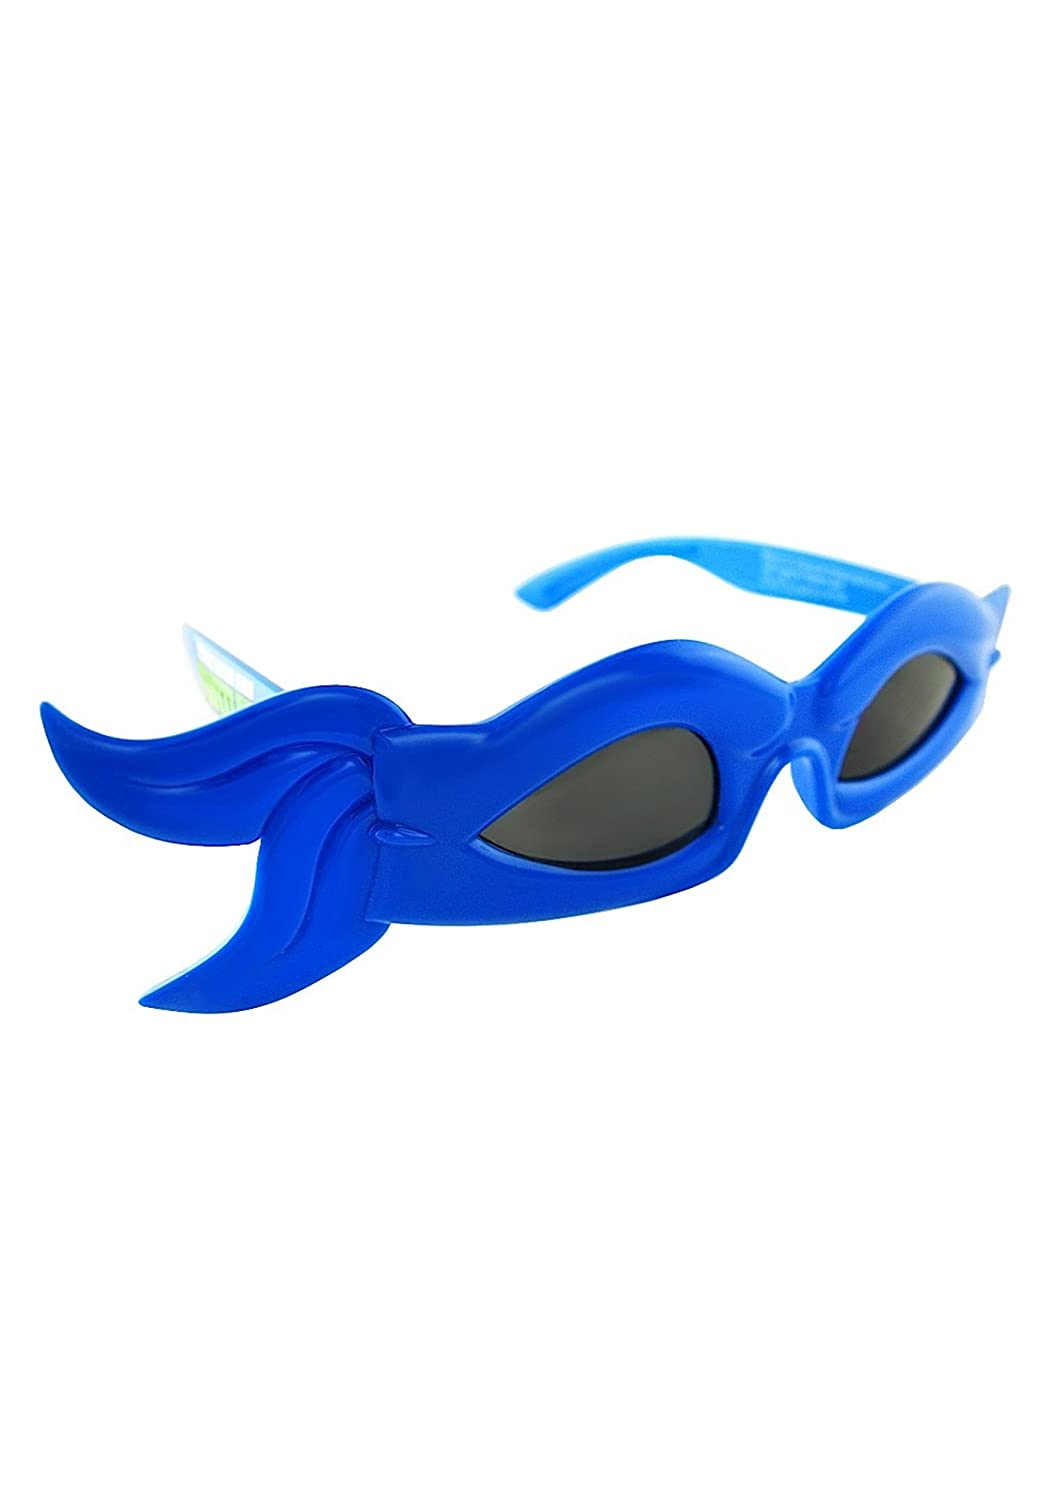 Sunstaches Teenage Mutant Ninja Turtles Blue Bandana Sunglasses, Party Favors, UV400